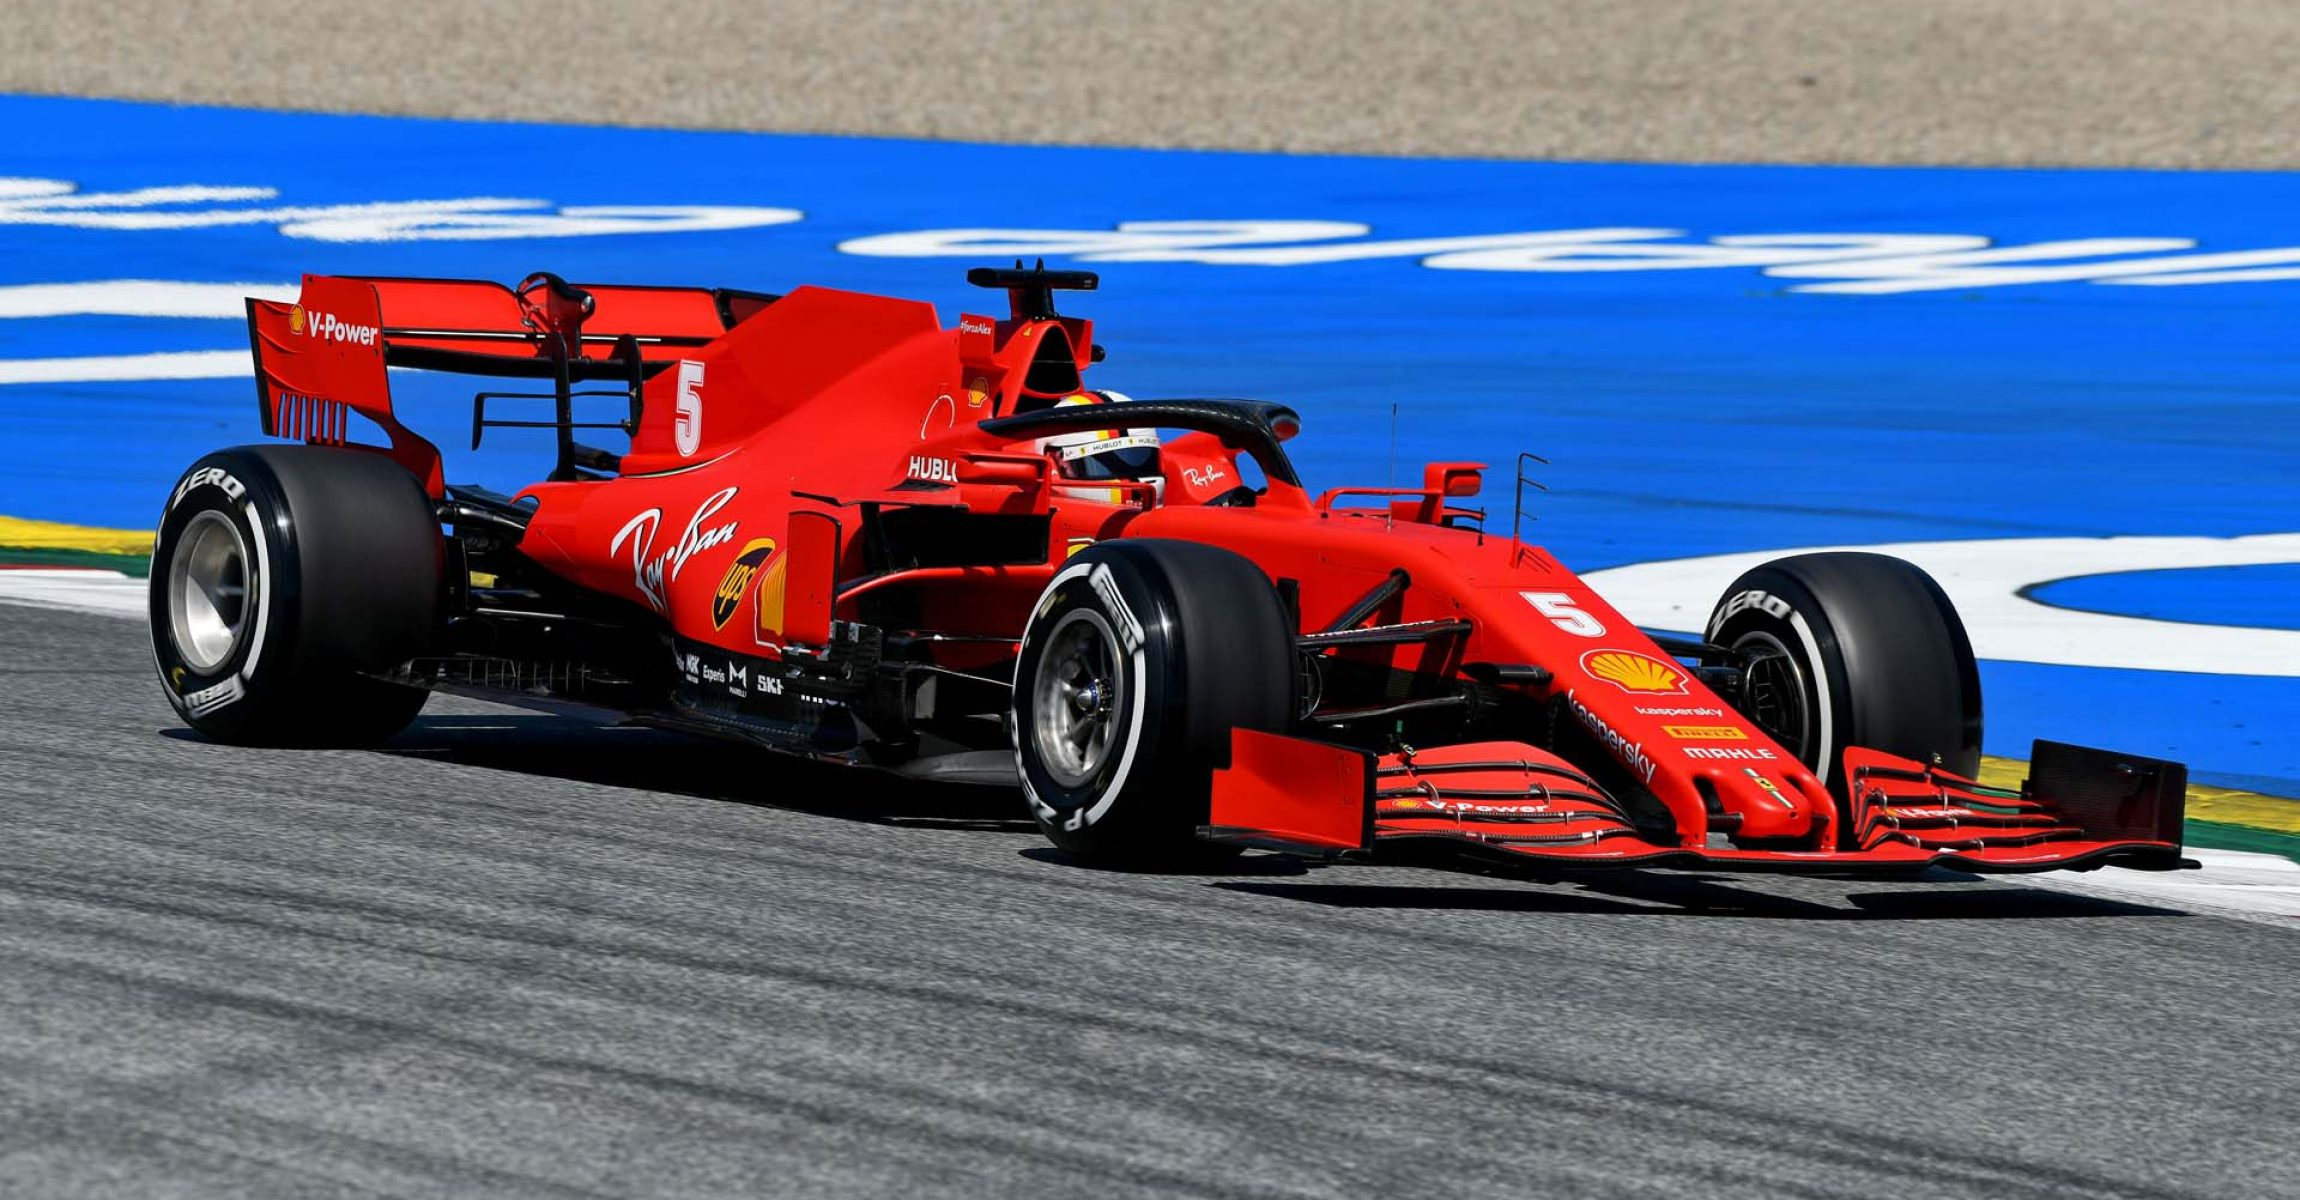 GP STYRIA F1/2020 - VENERDÌ 10/07/2020 credit: @Scuderia Ferrari Press Office Sebastian Vettel Ferrari